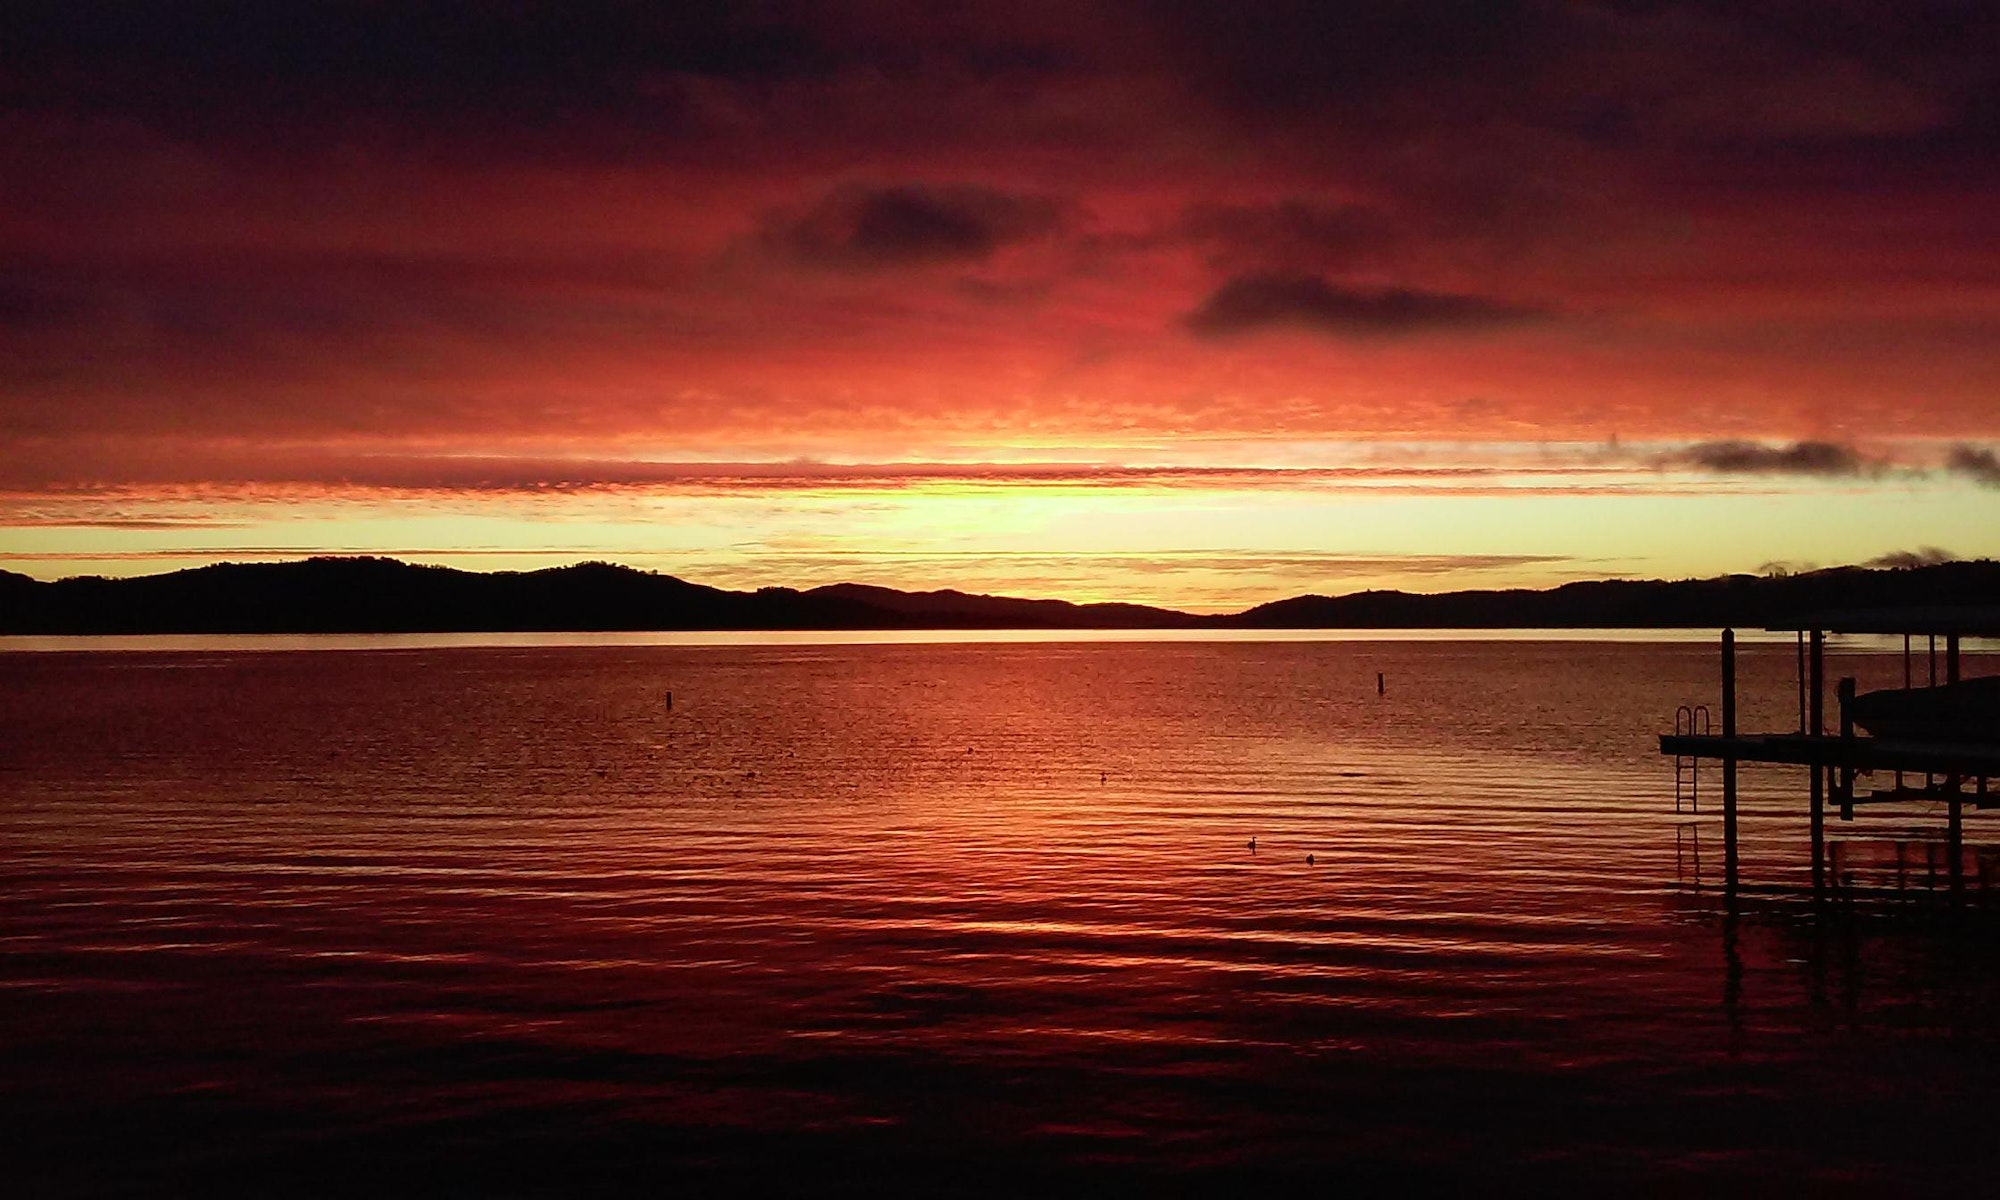 Red, orange and yellow sunrise over Clearlake